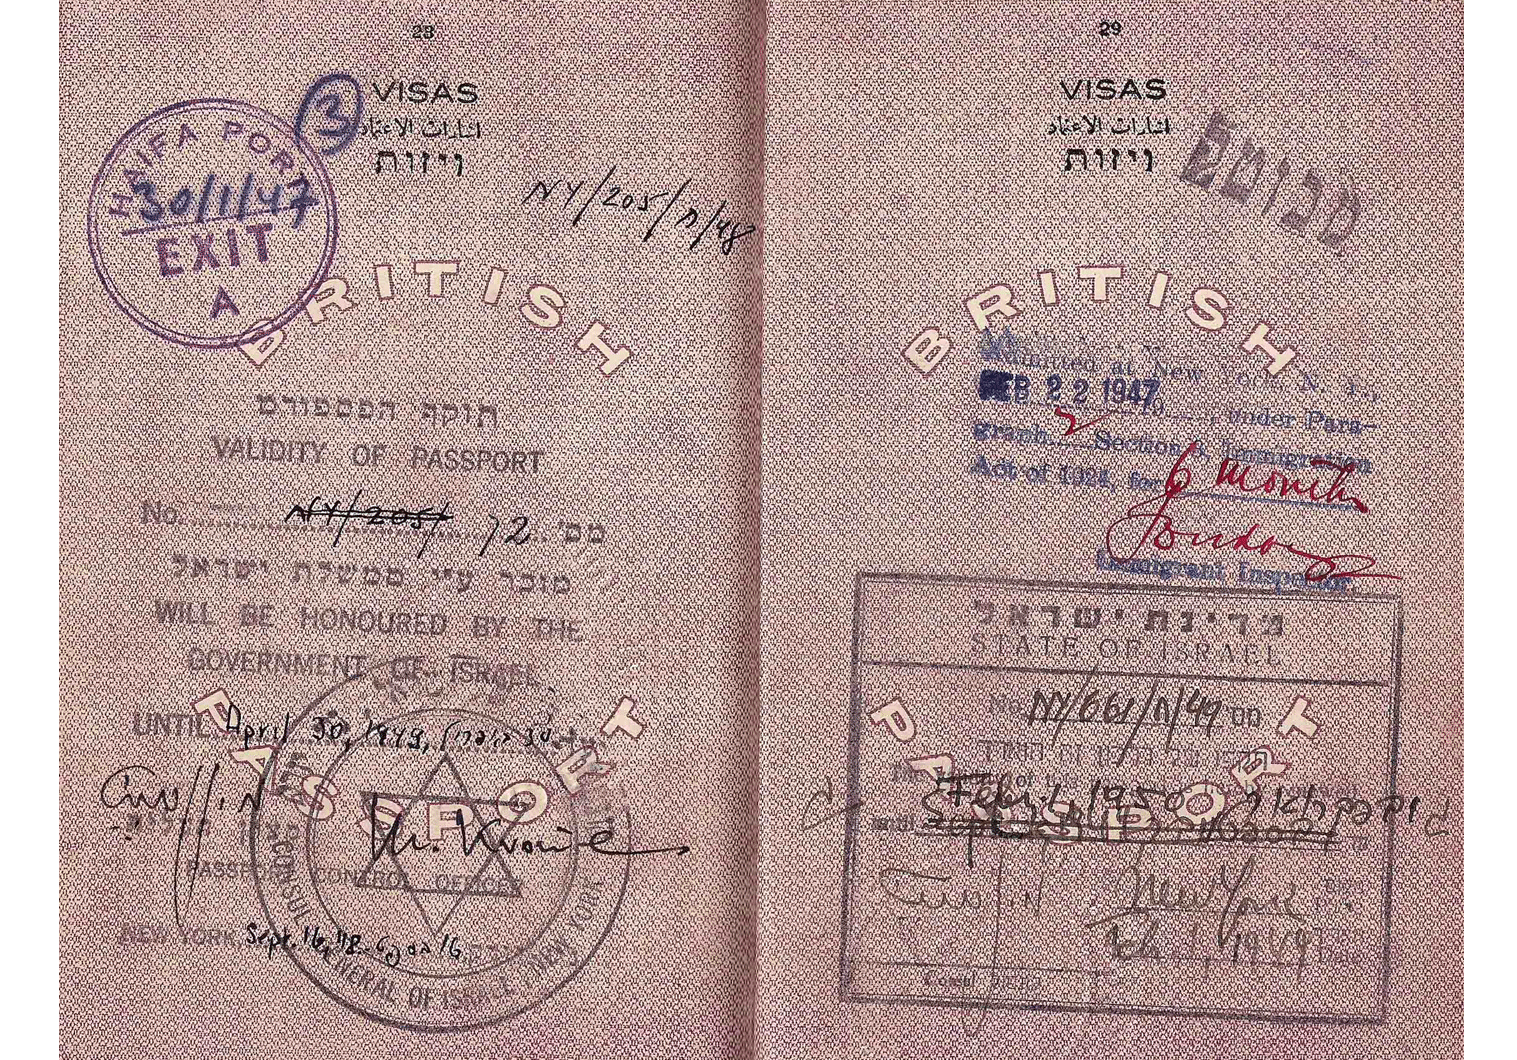 early Israeli visa